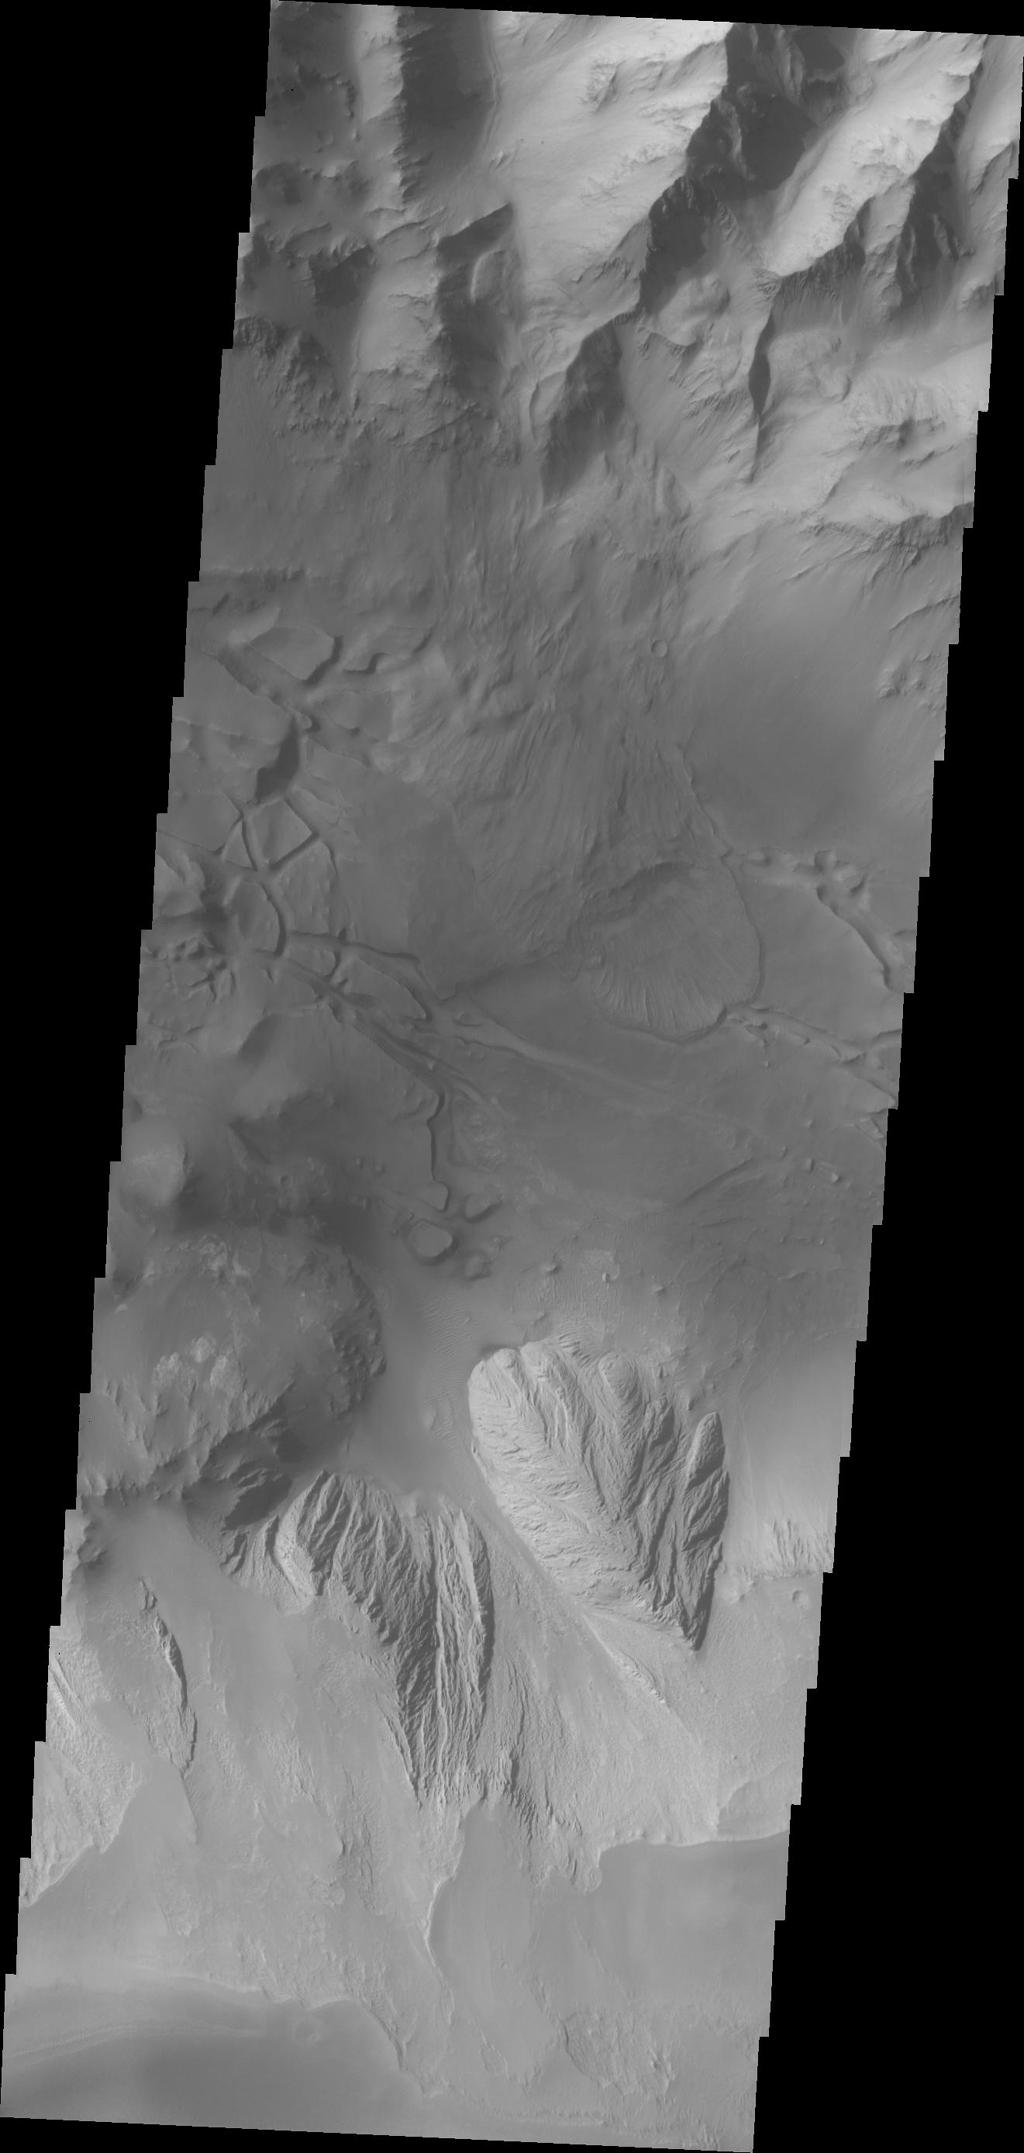 This image of Candor Chasma taken by NASA's 2001 Mars Odyssey contains eroded deposits of material and a large landslide deposit. Gravity, wind, and water all played a role in shaping the landforms we see in this image.